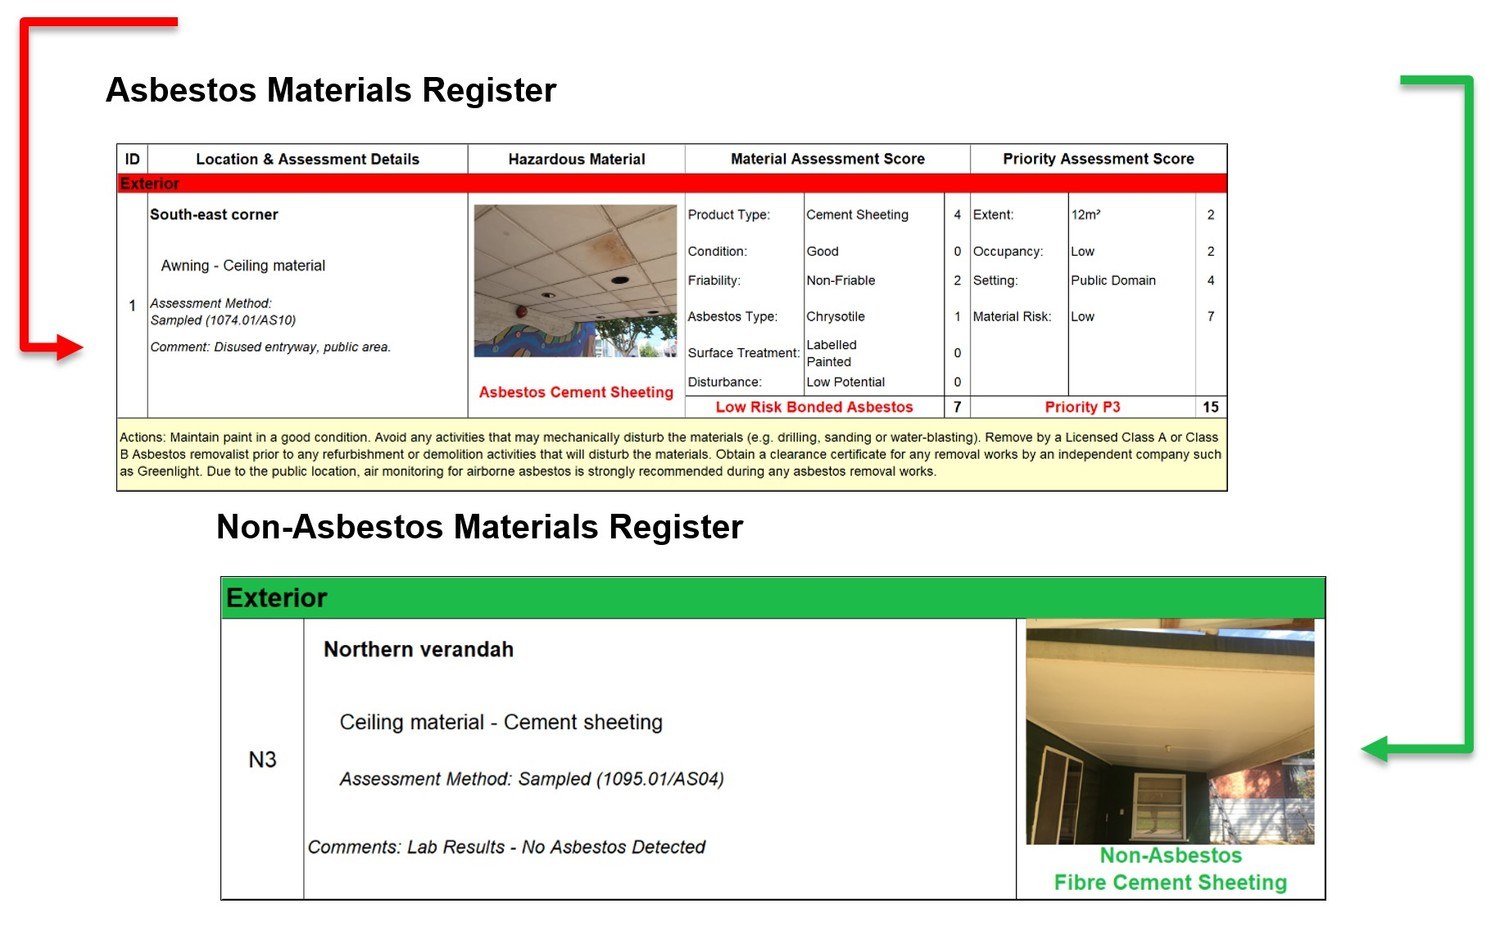 For residential asbestos inspection reports, Greenlight present two distinct sections outlining what is safe and what is not - this avoids confusion and clearly communicates our findings.